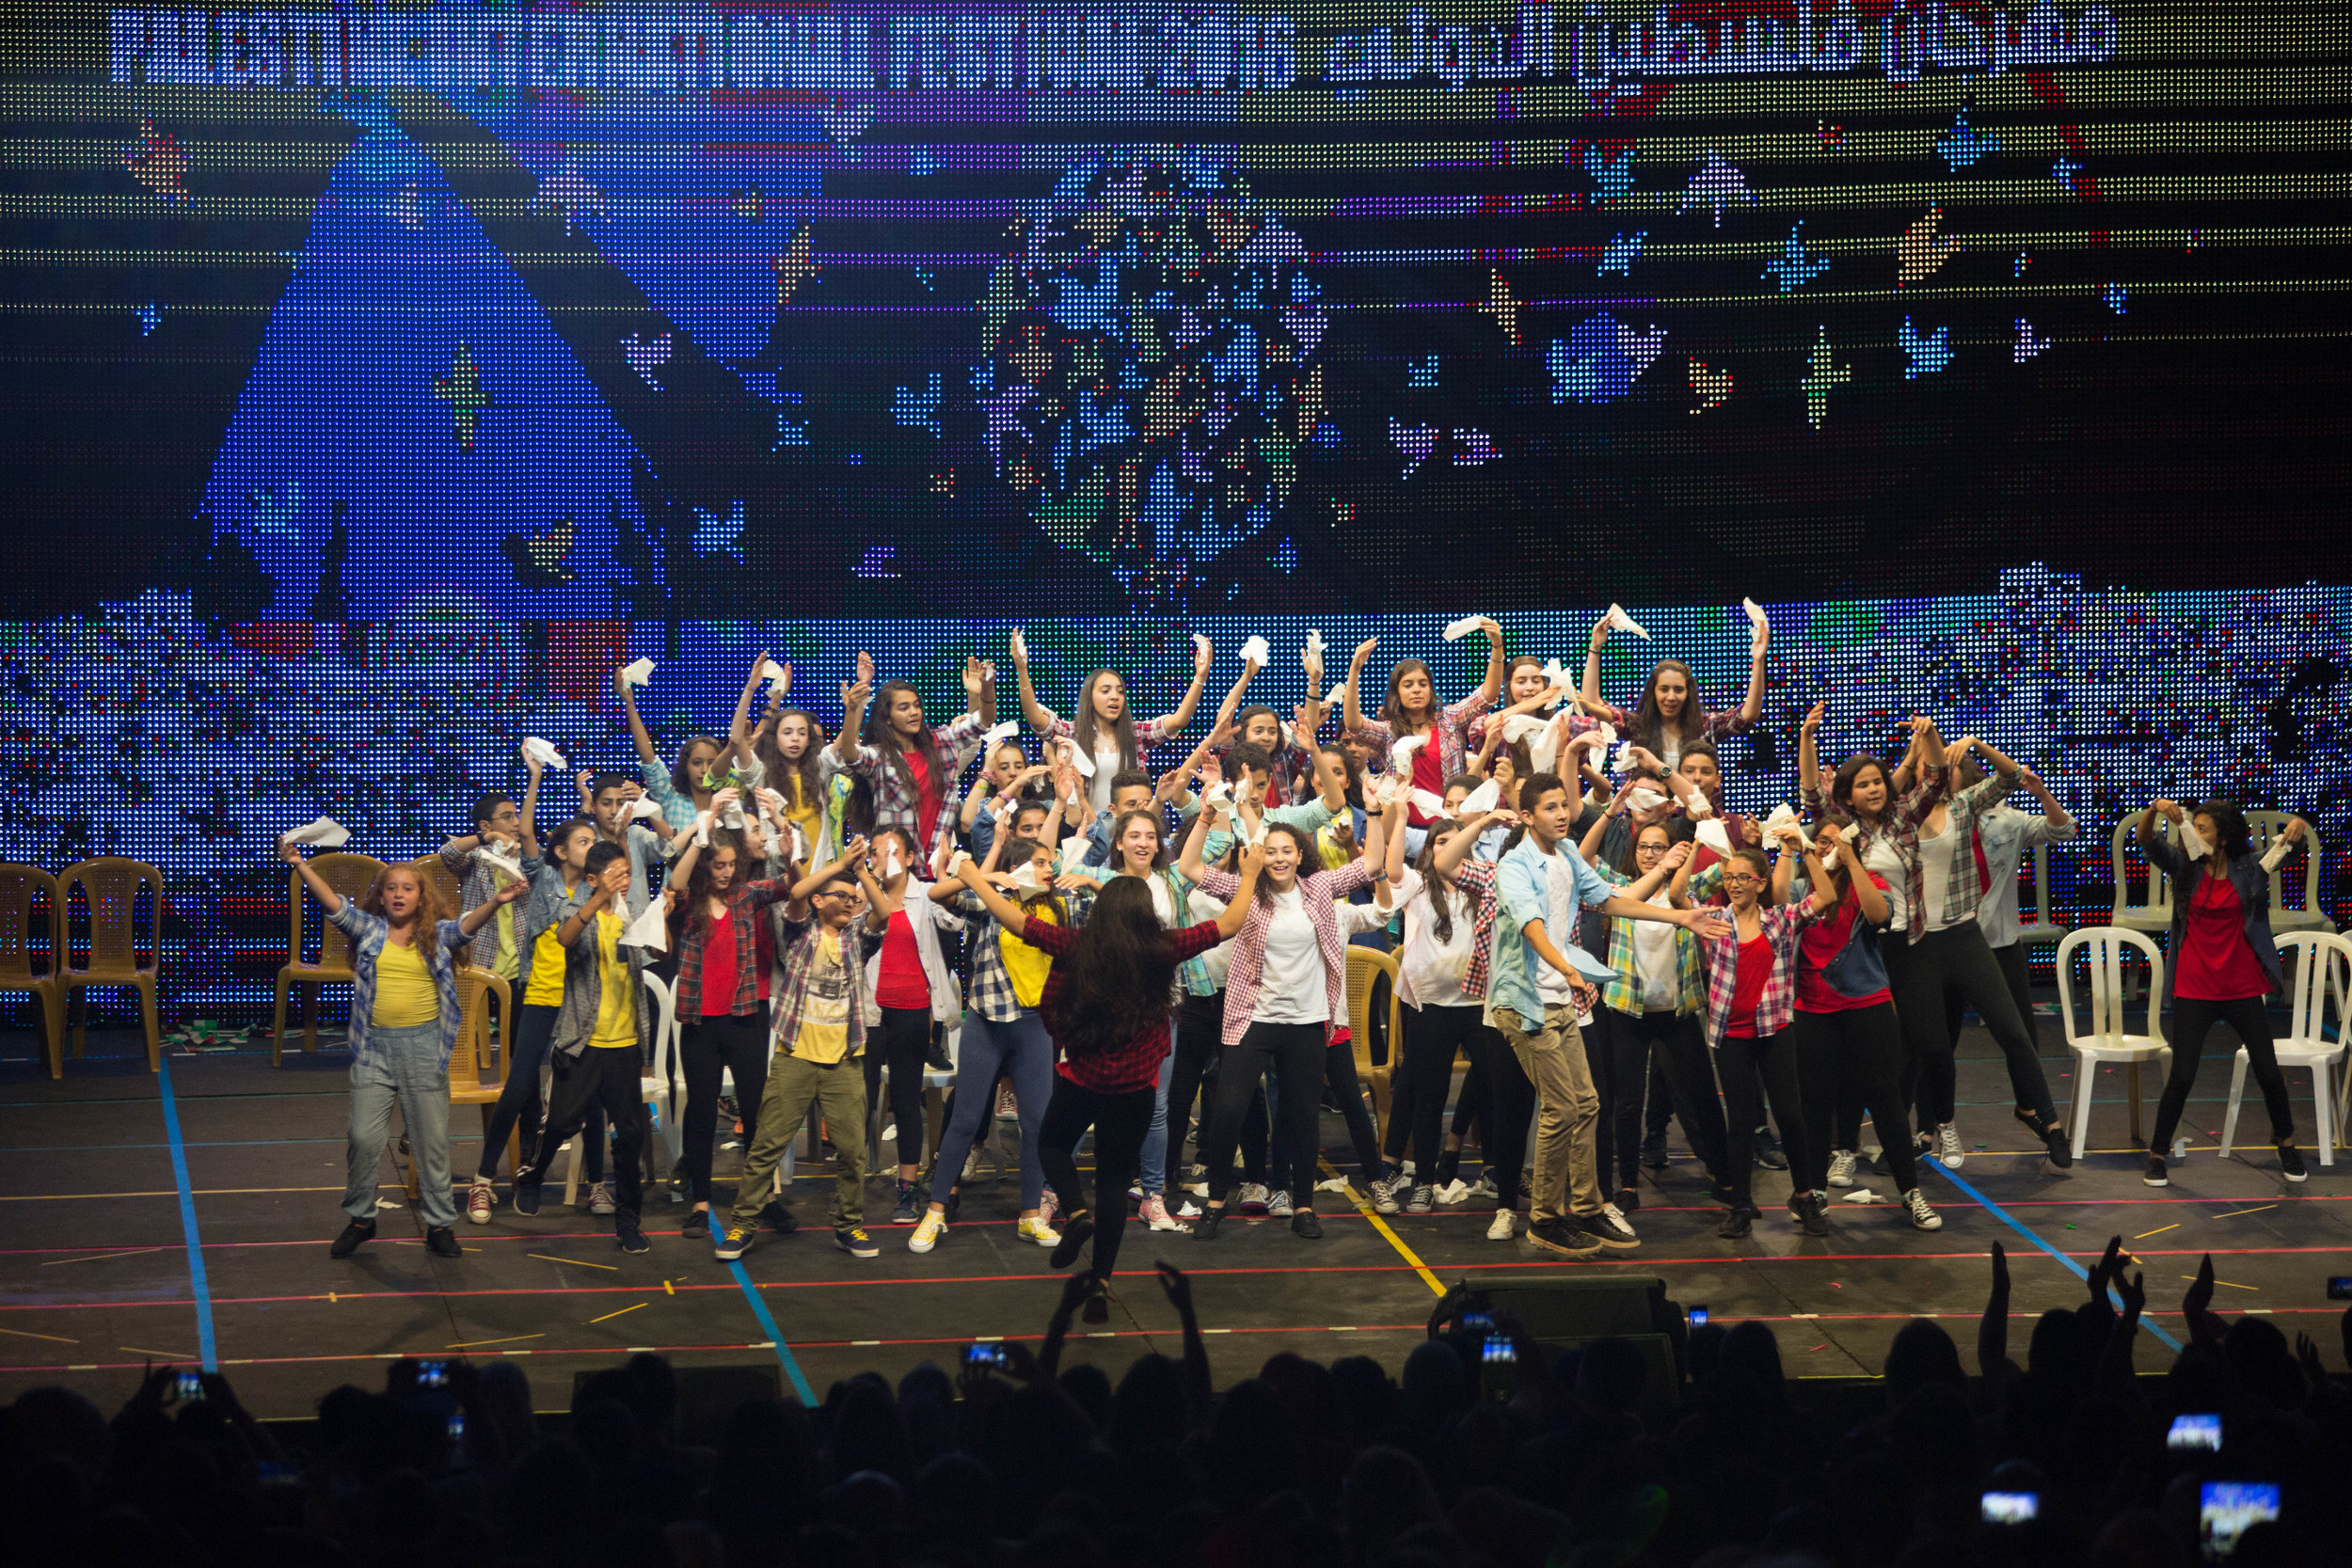 Palestine International Festival 2016 © Ahmed Oudeh